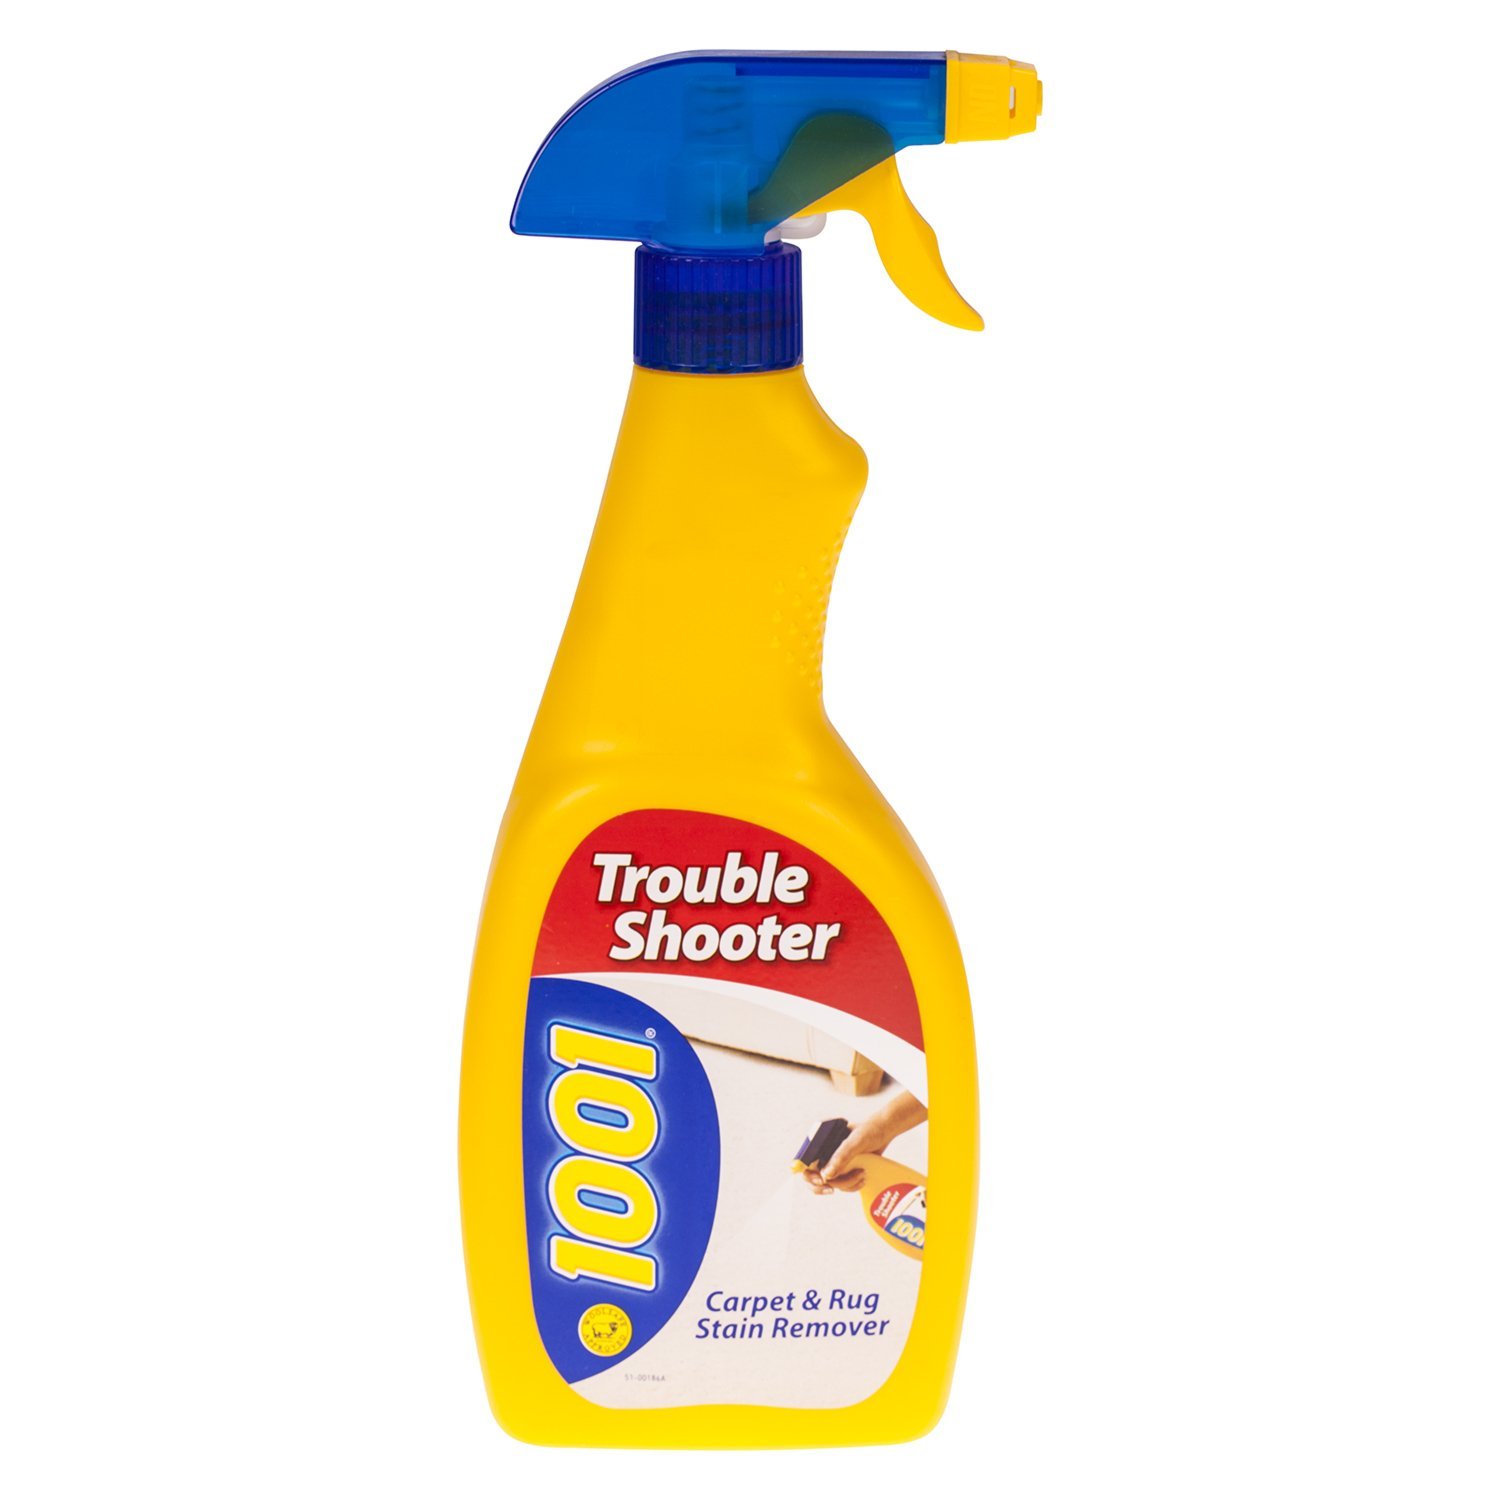 1001 3Pc 500Ml Trouble Shooter Carpets Upholstery Stain Cleaner Trigger Spray Ultra Citrus